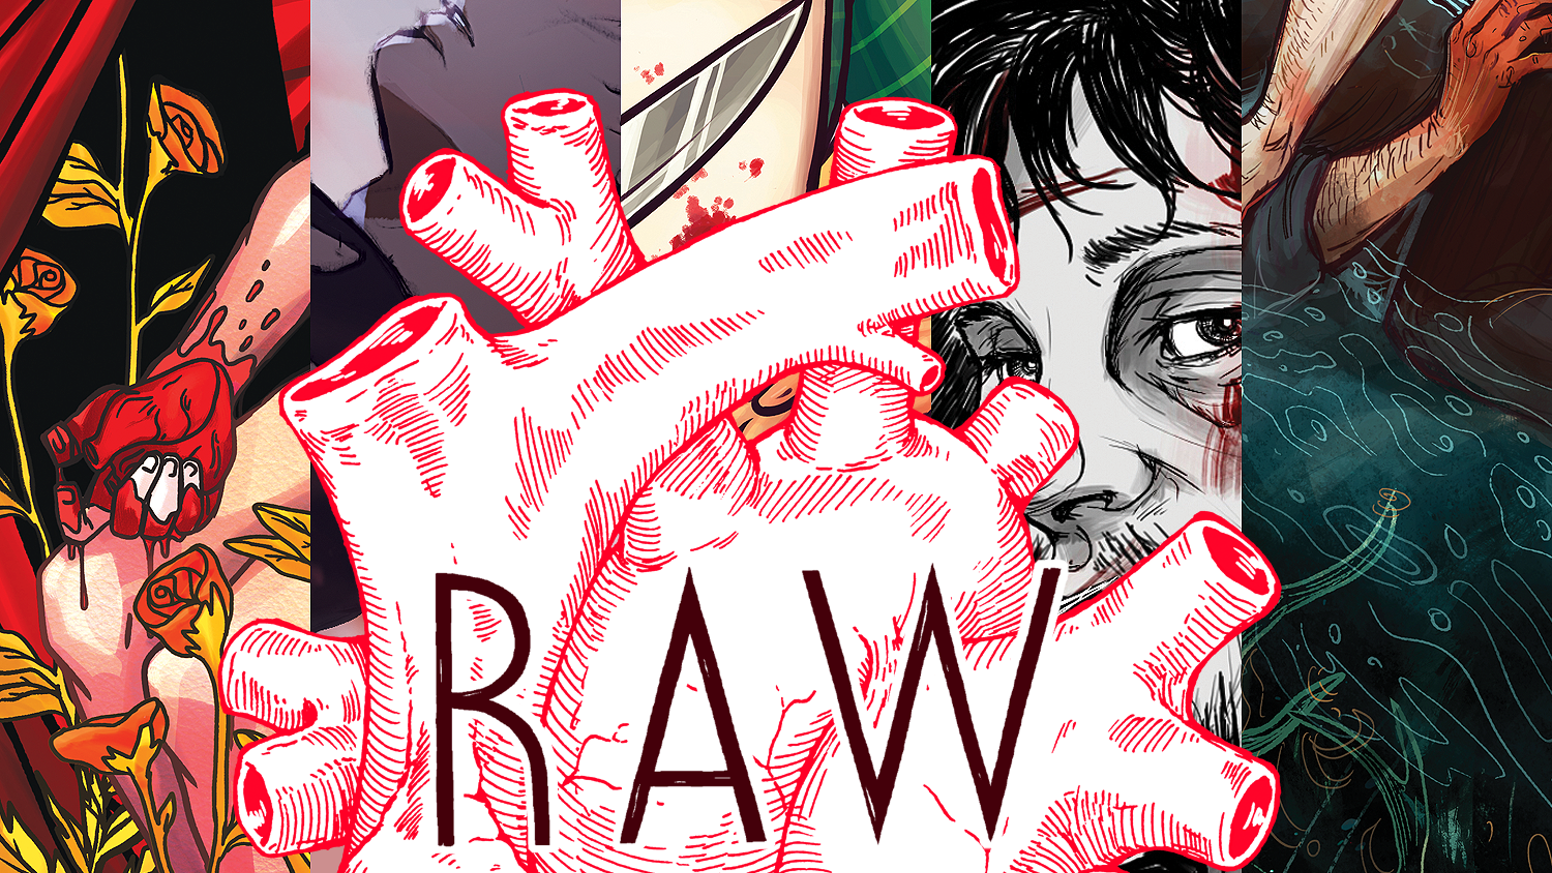 An anthology tribute to the relationship between Will Graham & Hannibal Lecter, featuring over 200 pages of art, comics, and fiction.